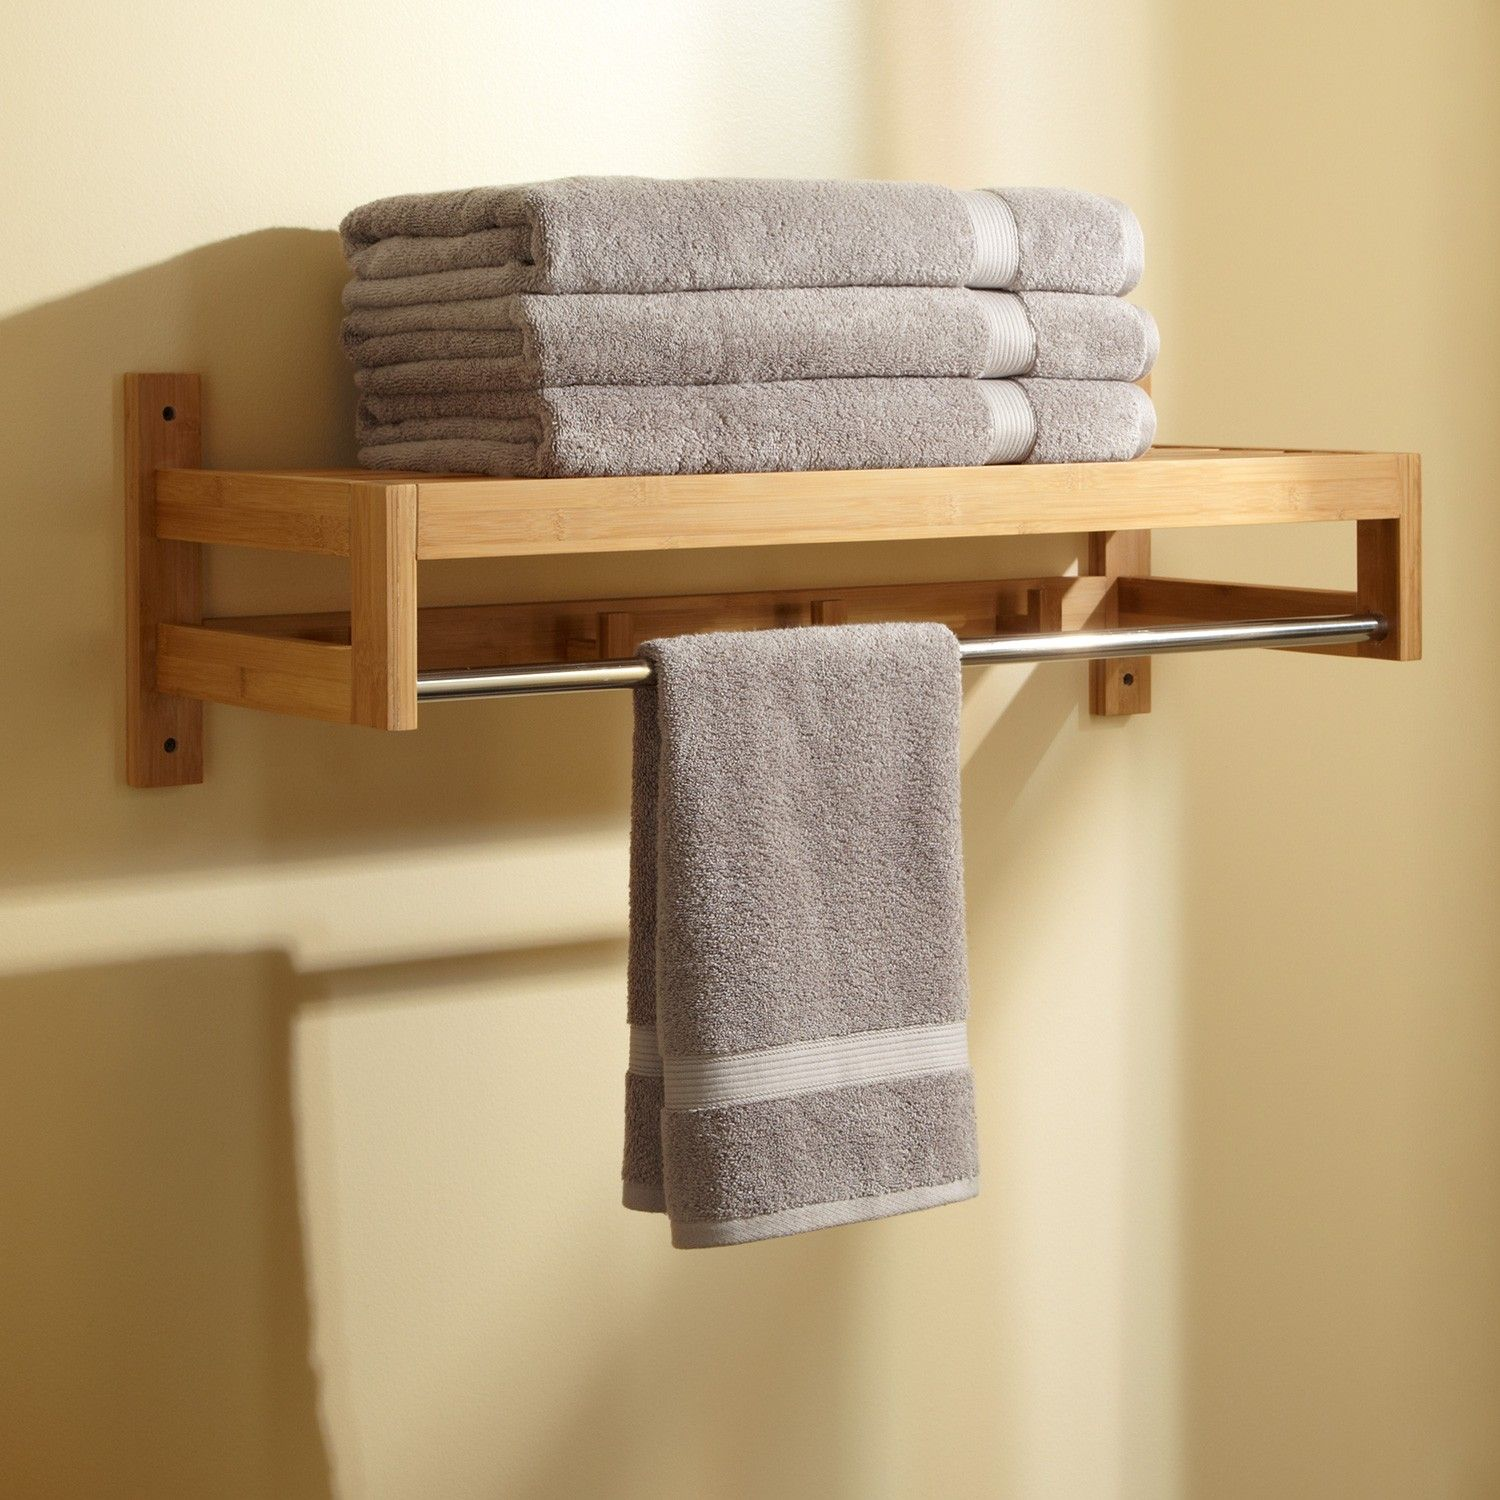 bathroom towel hooks bamboo towel rack with hooks new bathroom accessories bathroom - Bathroom Accessories Towel Rail